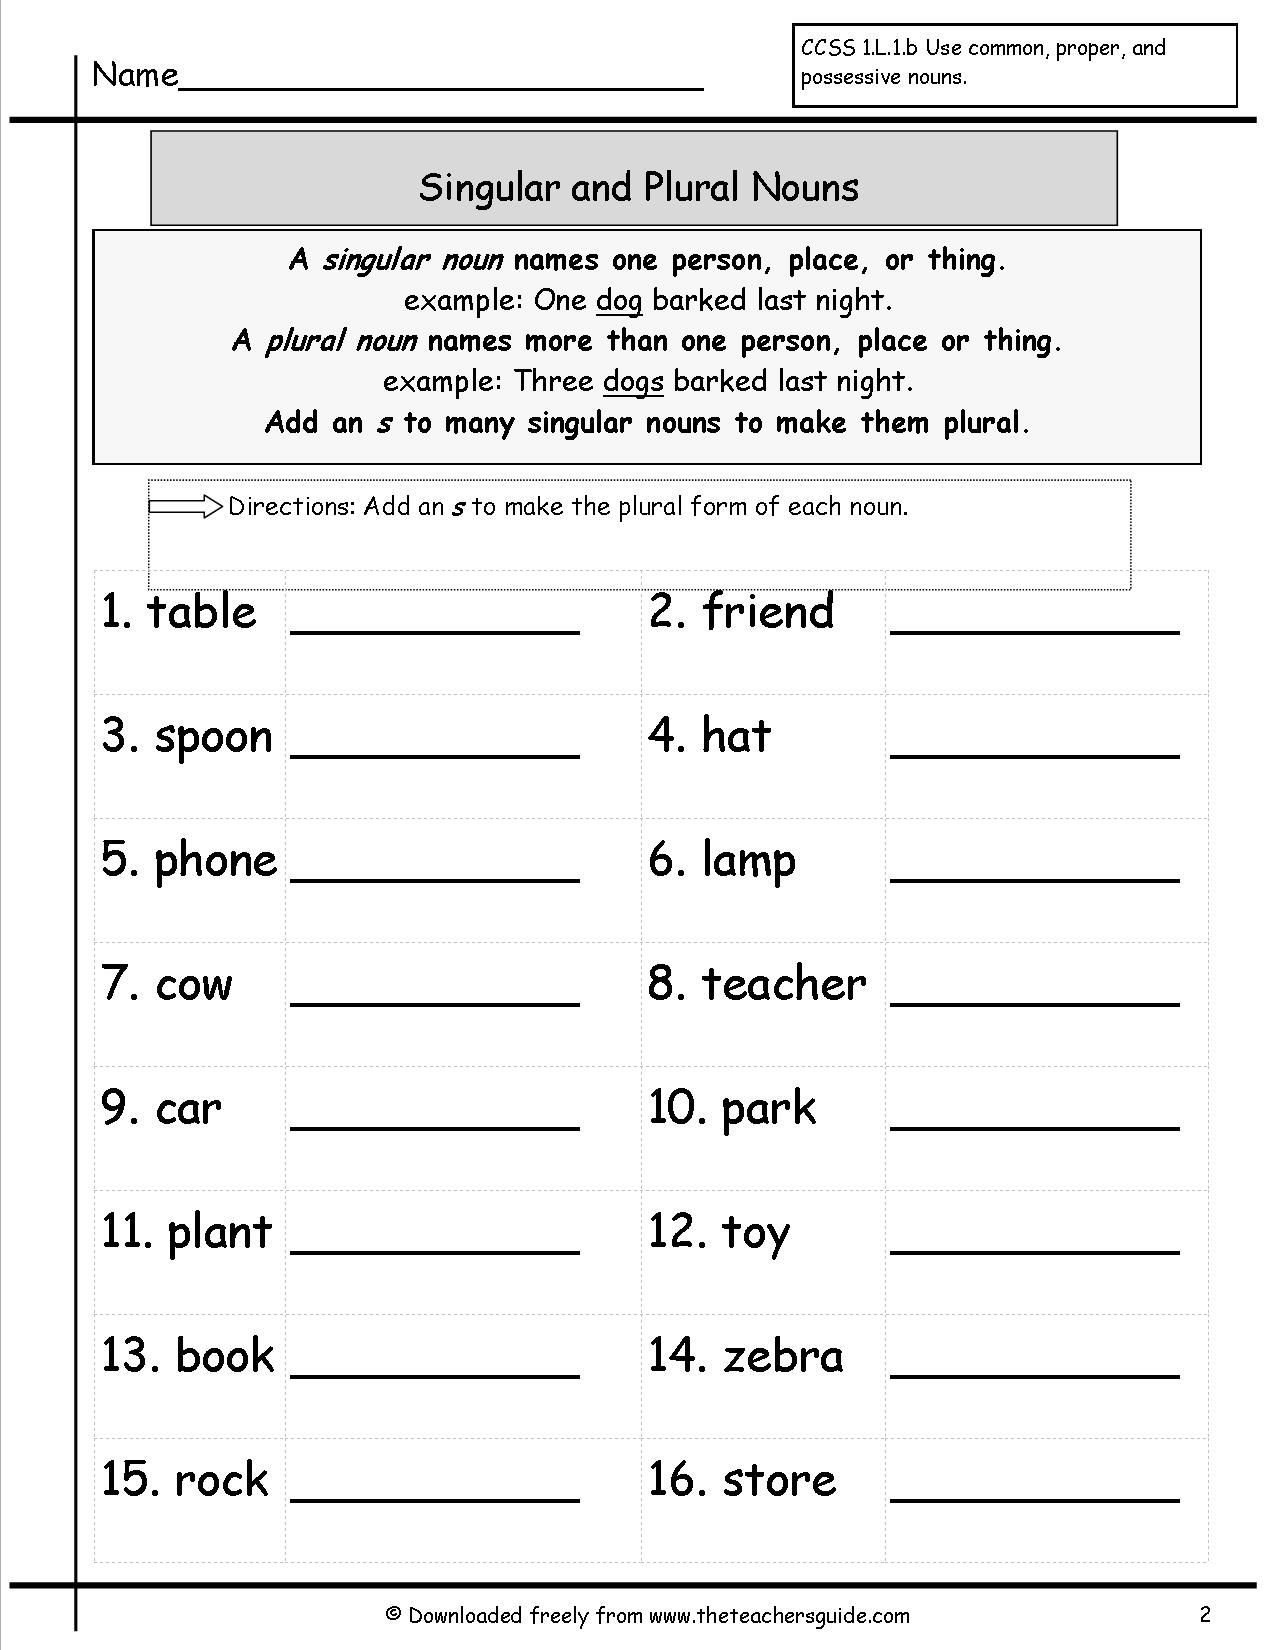 Free Irregular Plural Nouns Worksheet Singular and Plural Nouns Worksheets From the Teacher S